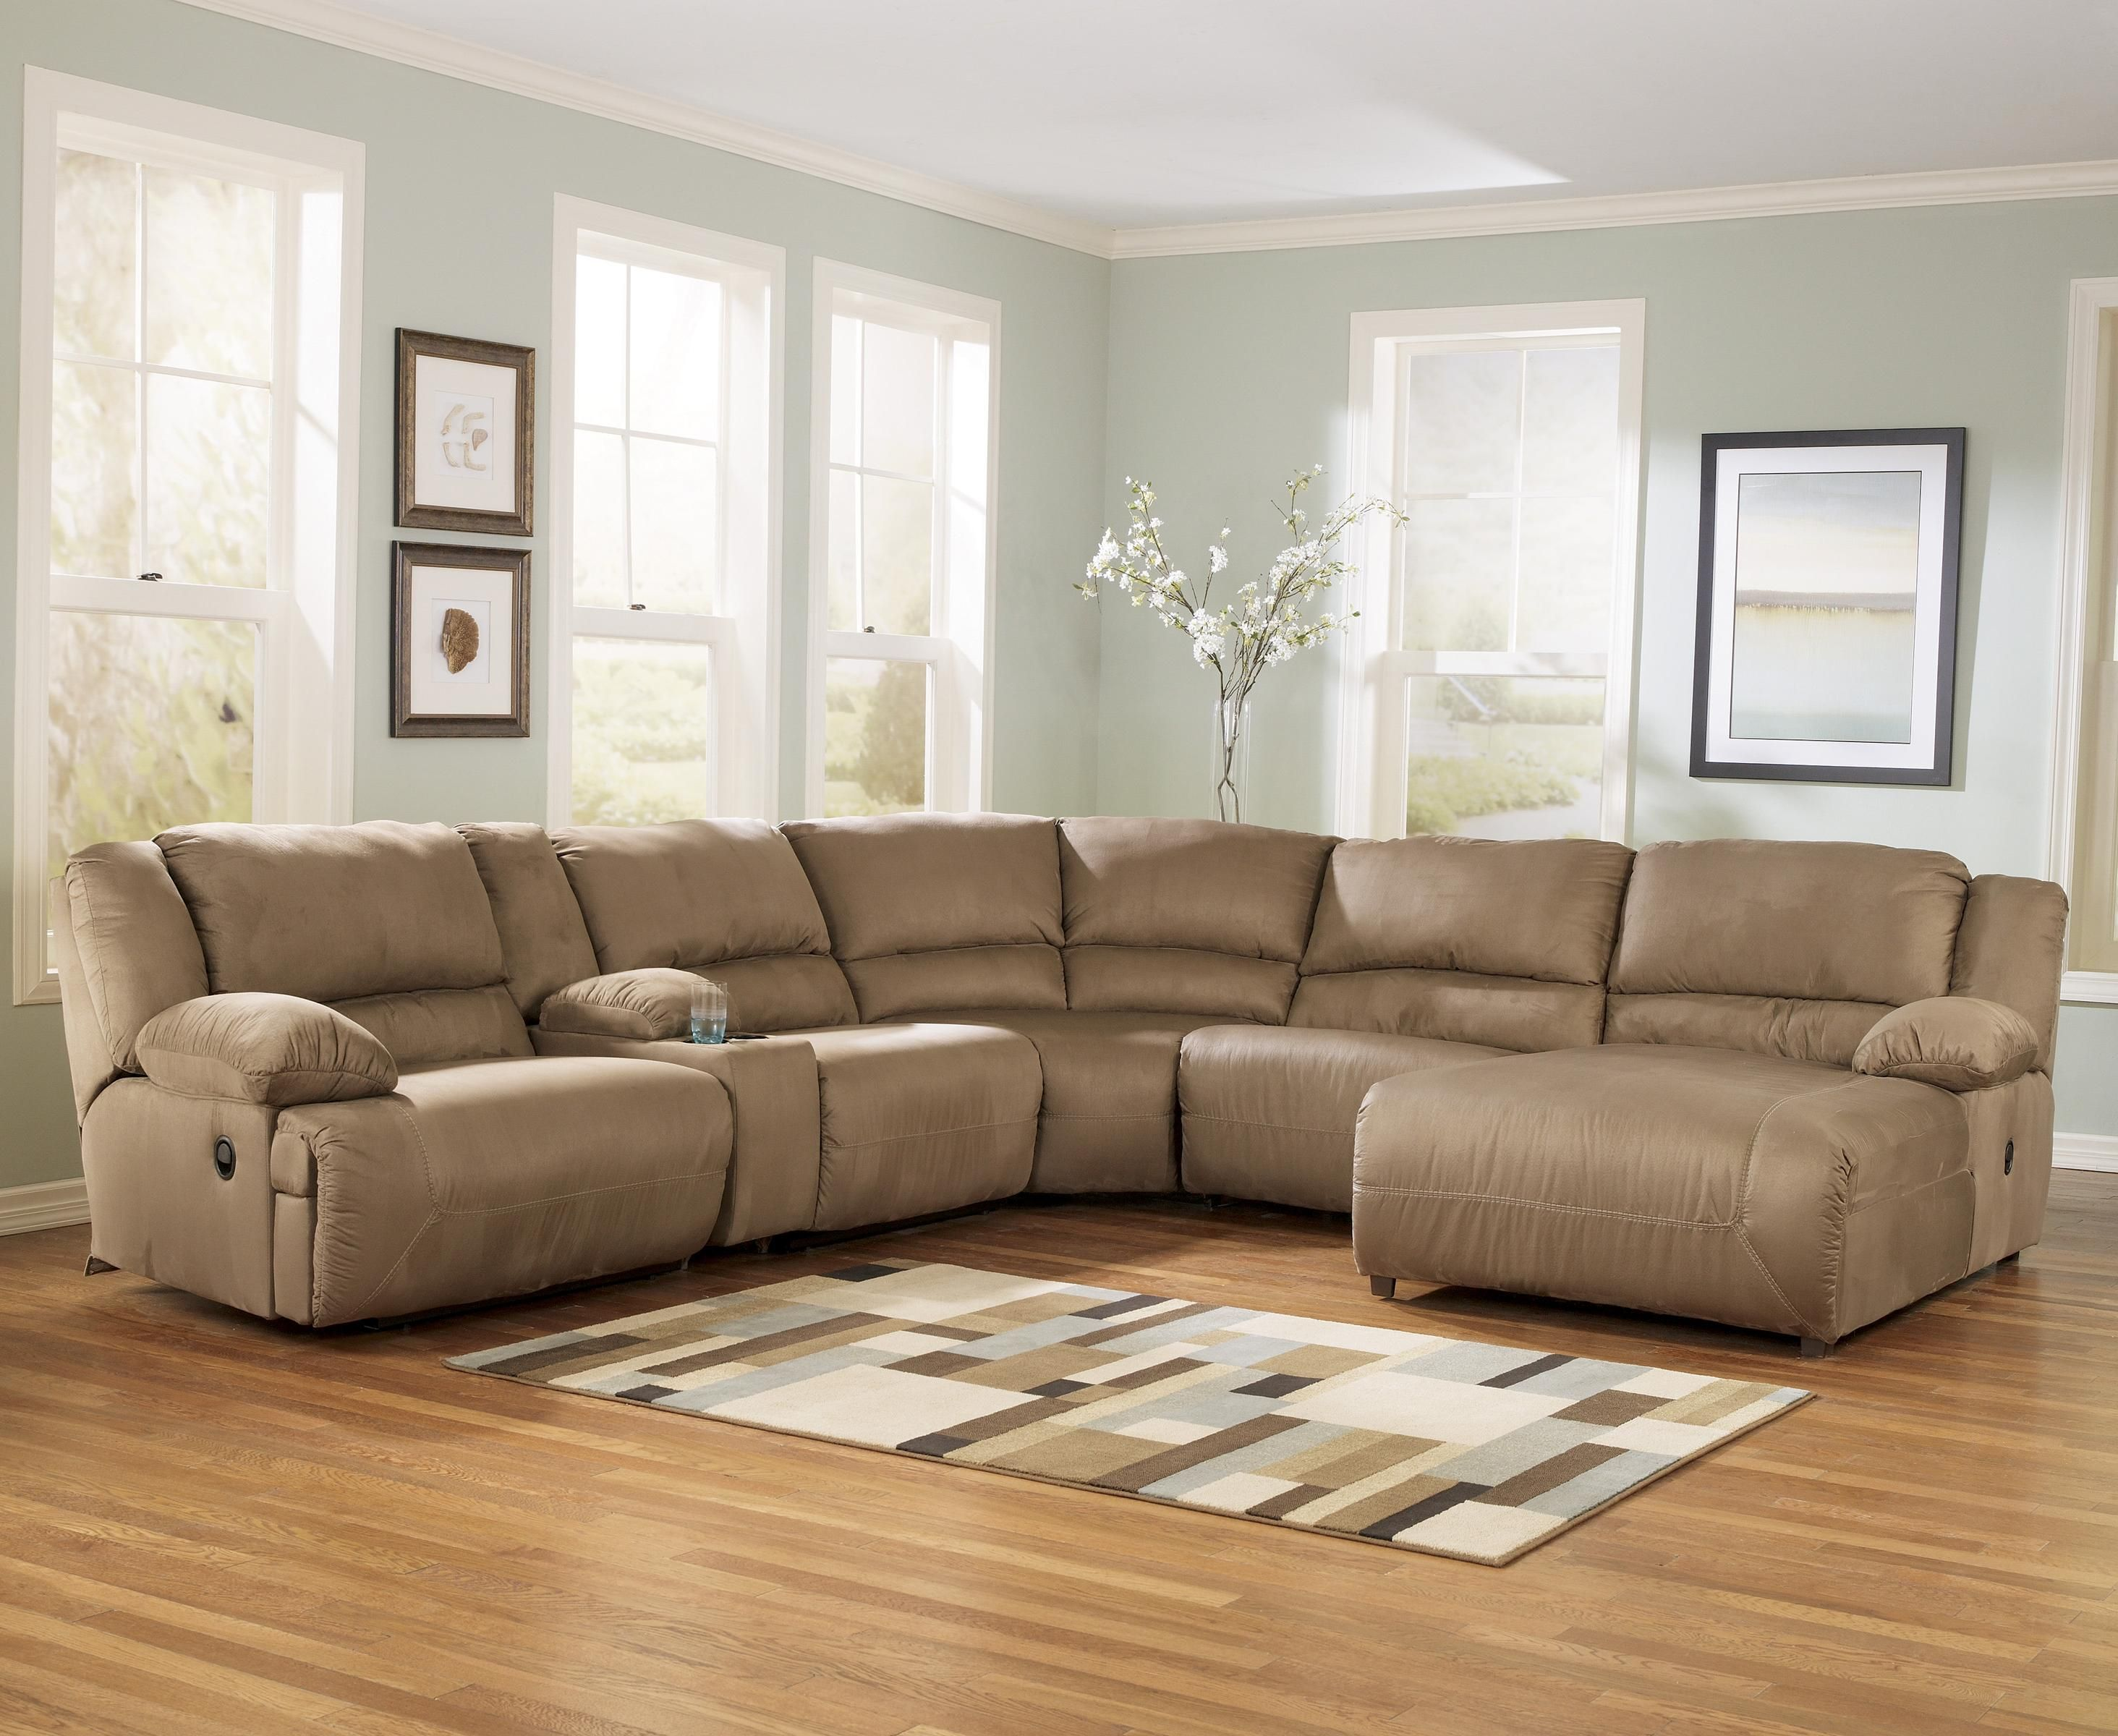 Hogan mocha 6 piece motion sectional with right chaise for Ashley furniture sofa chaise